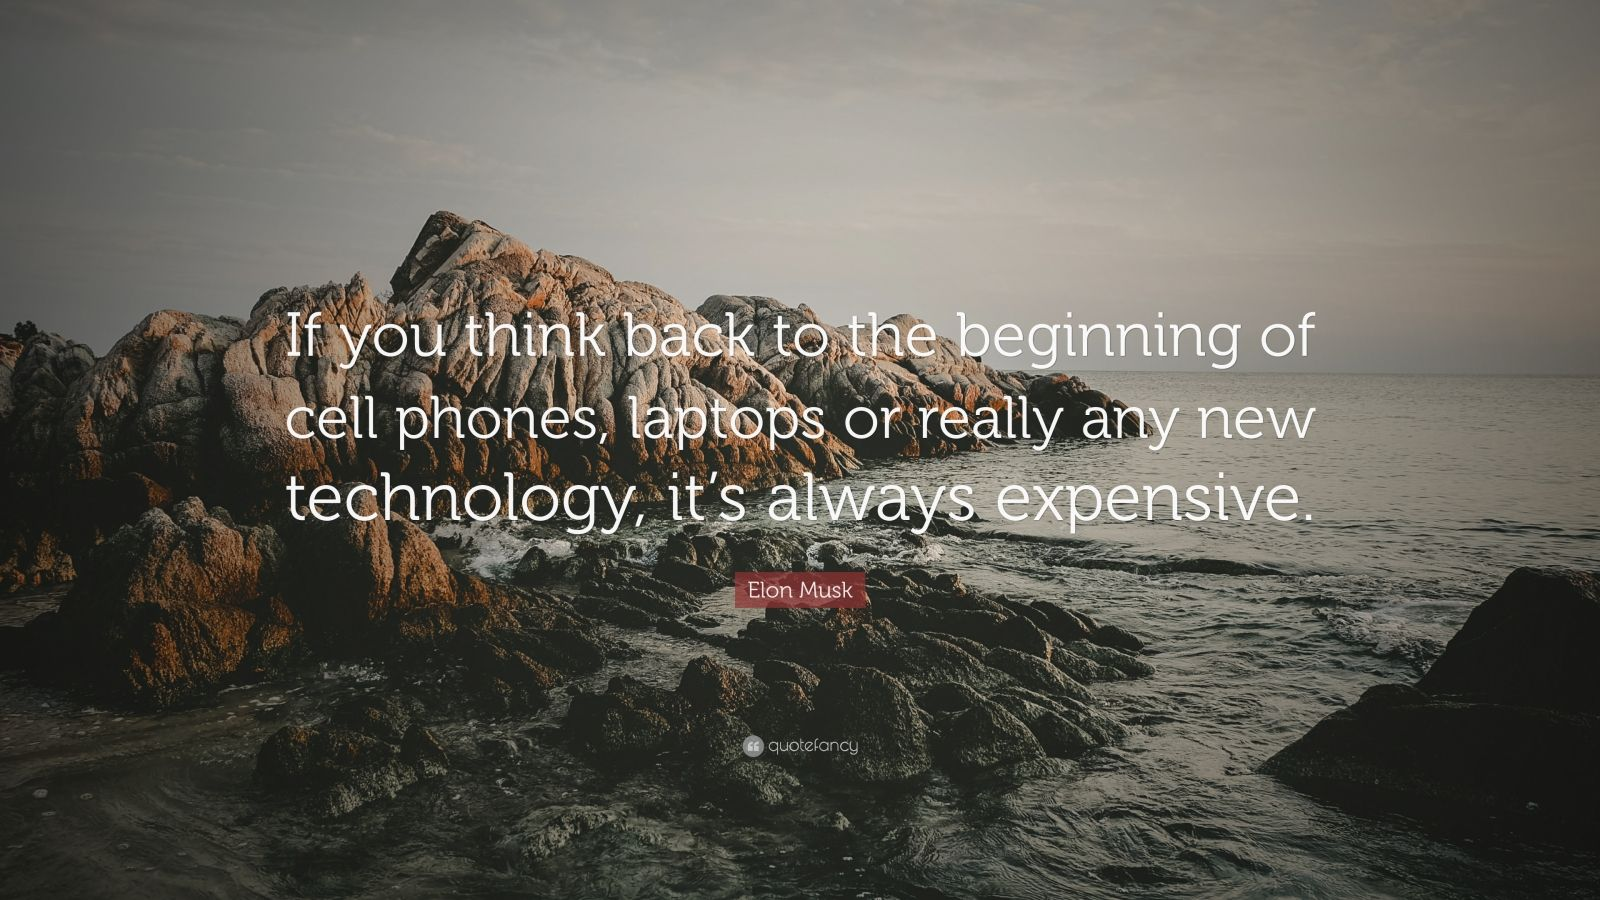 """Elon Musk Quote: """"If you think back to the beginning of cell phones, laptops or really any new technology, it's always expensive."""""""